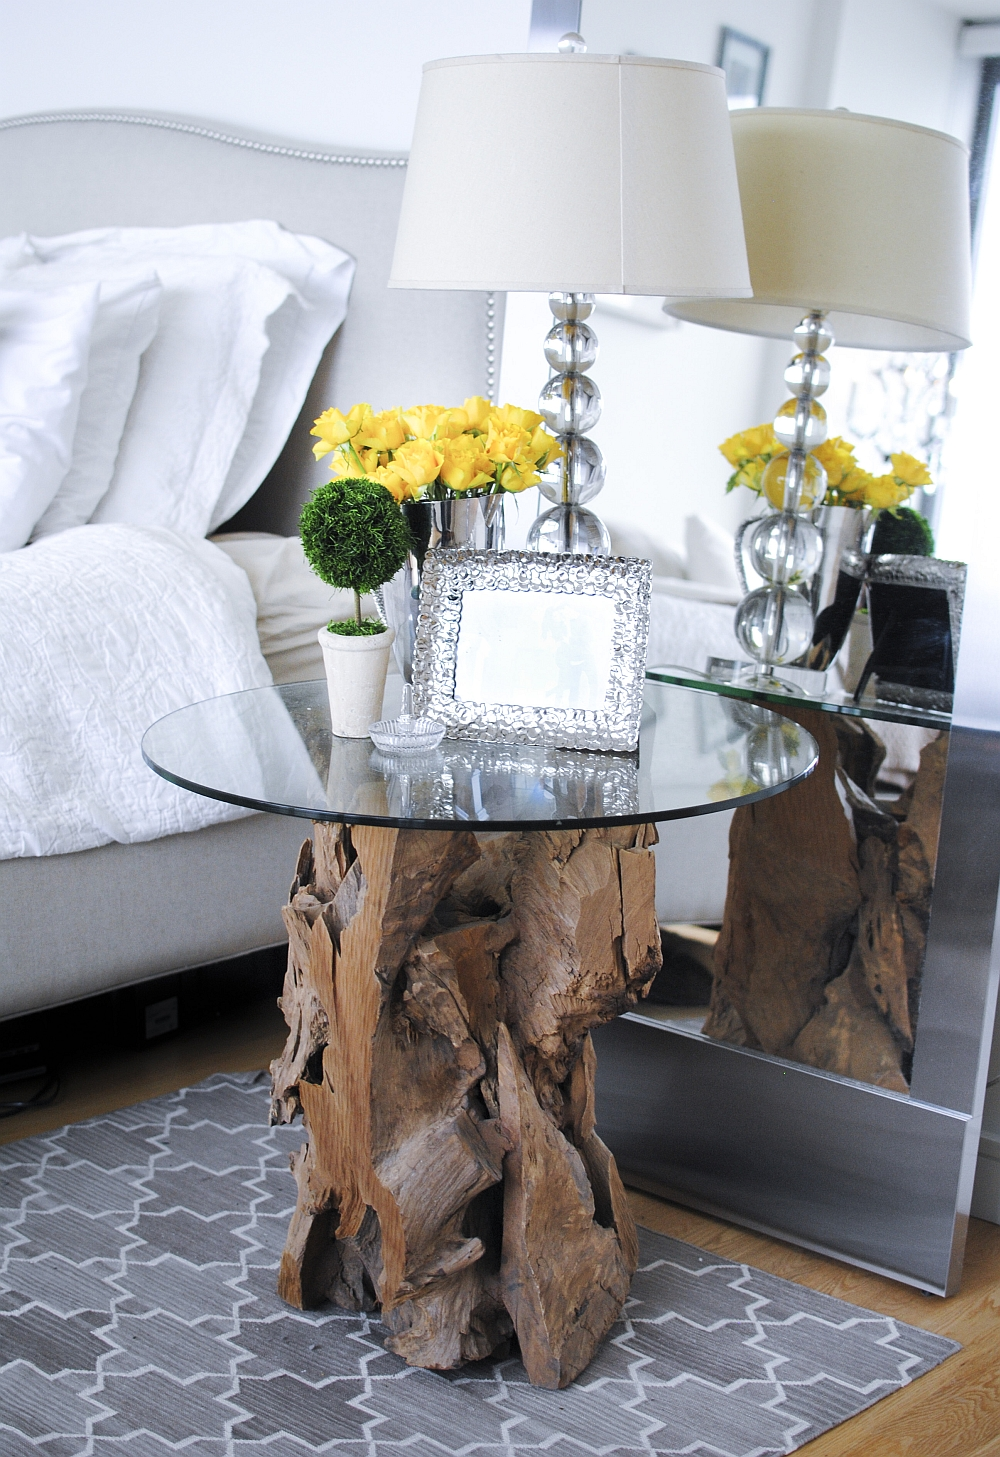 Unique bedside table idea in natural wood